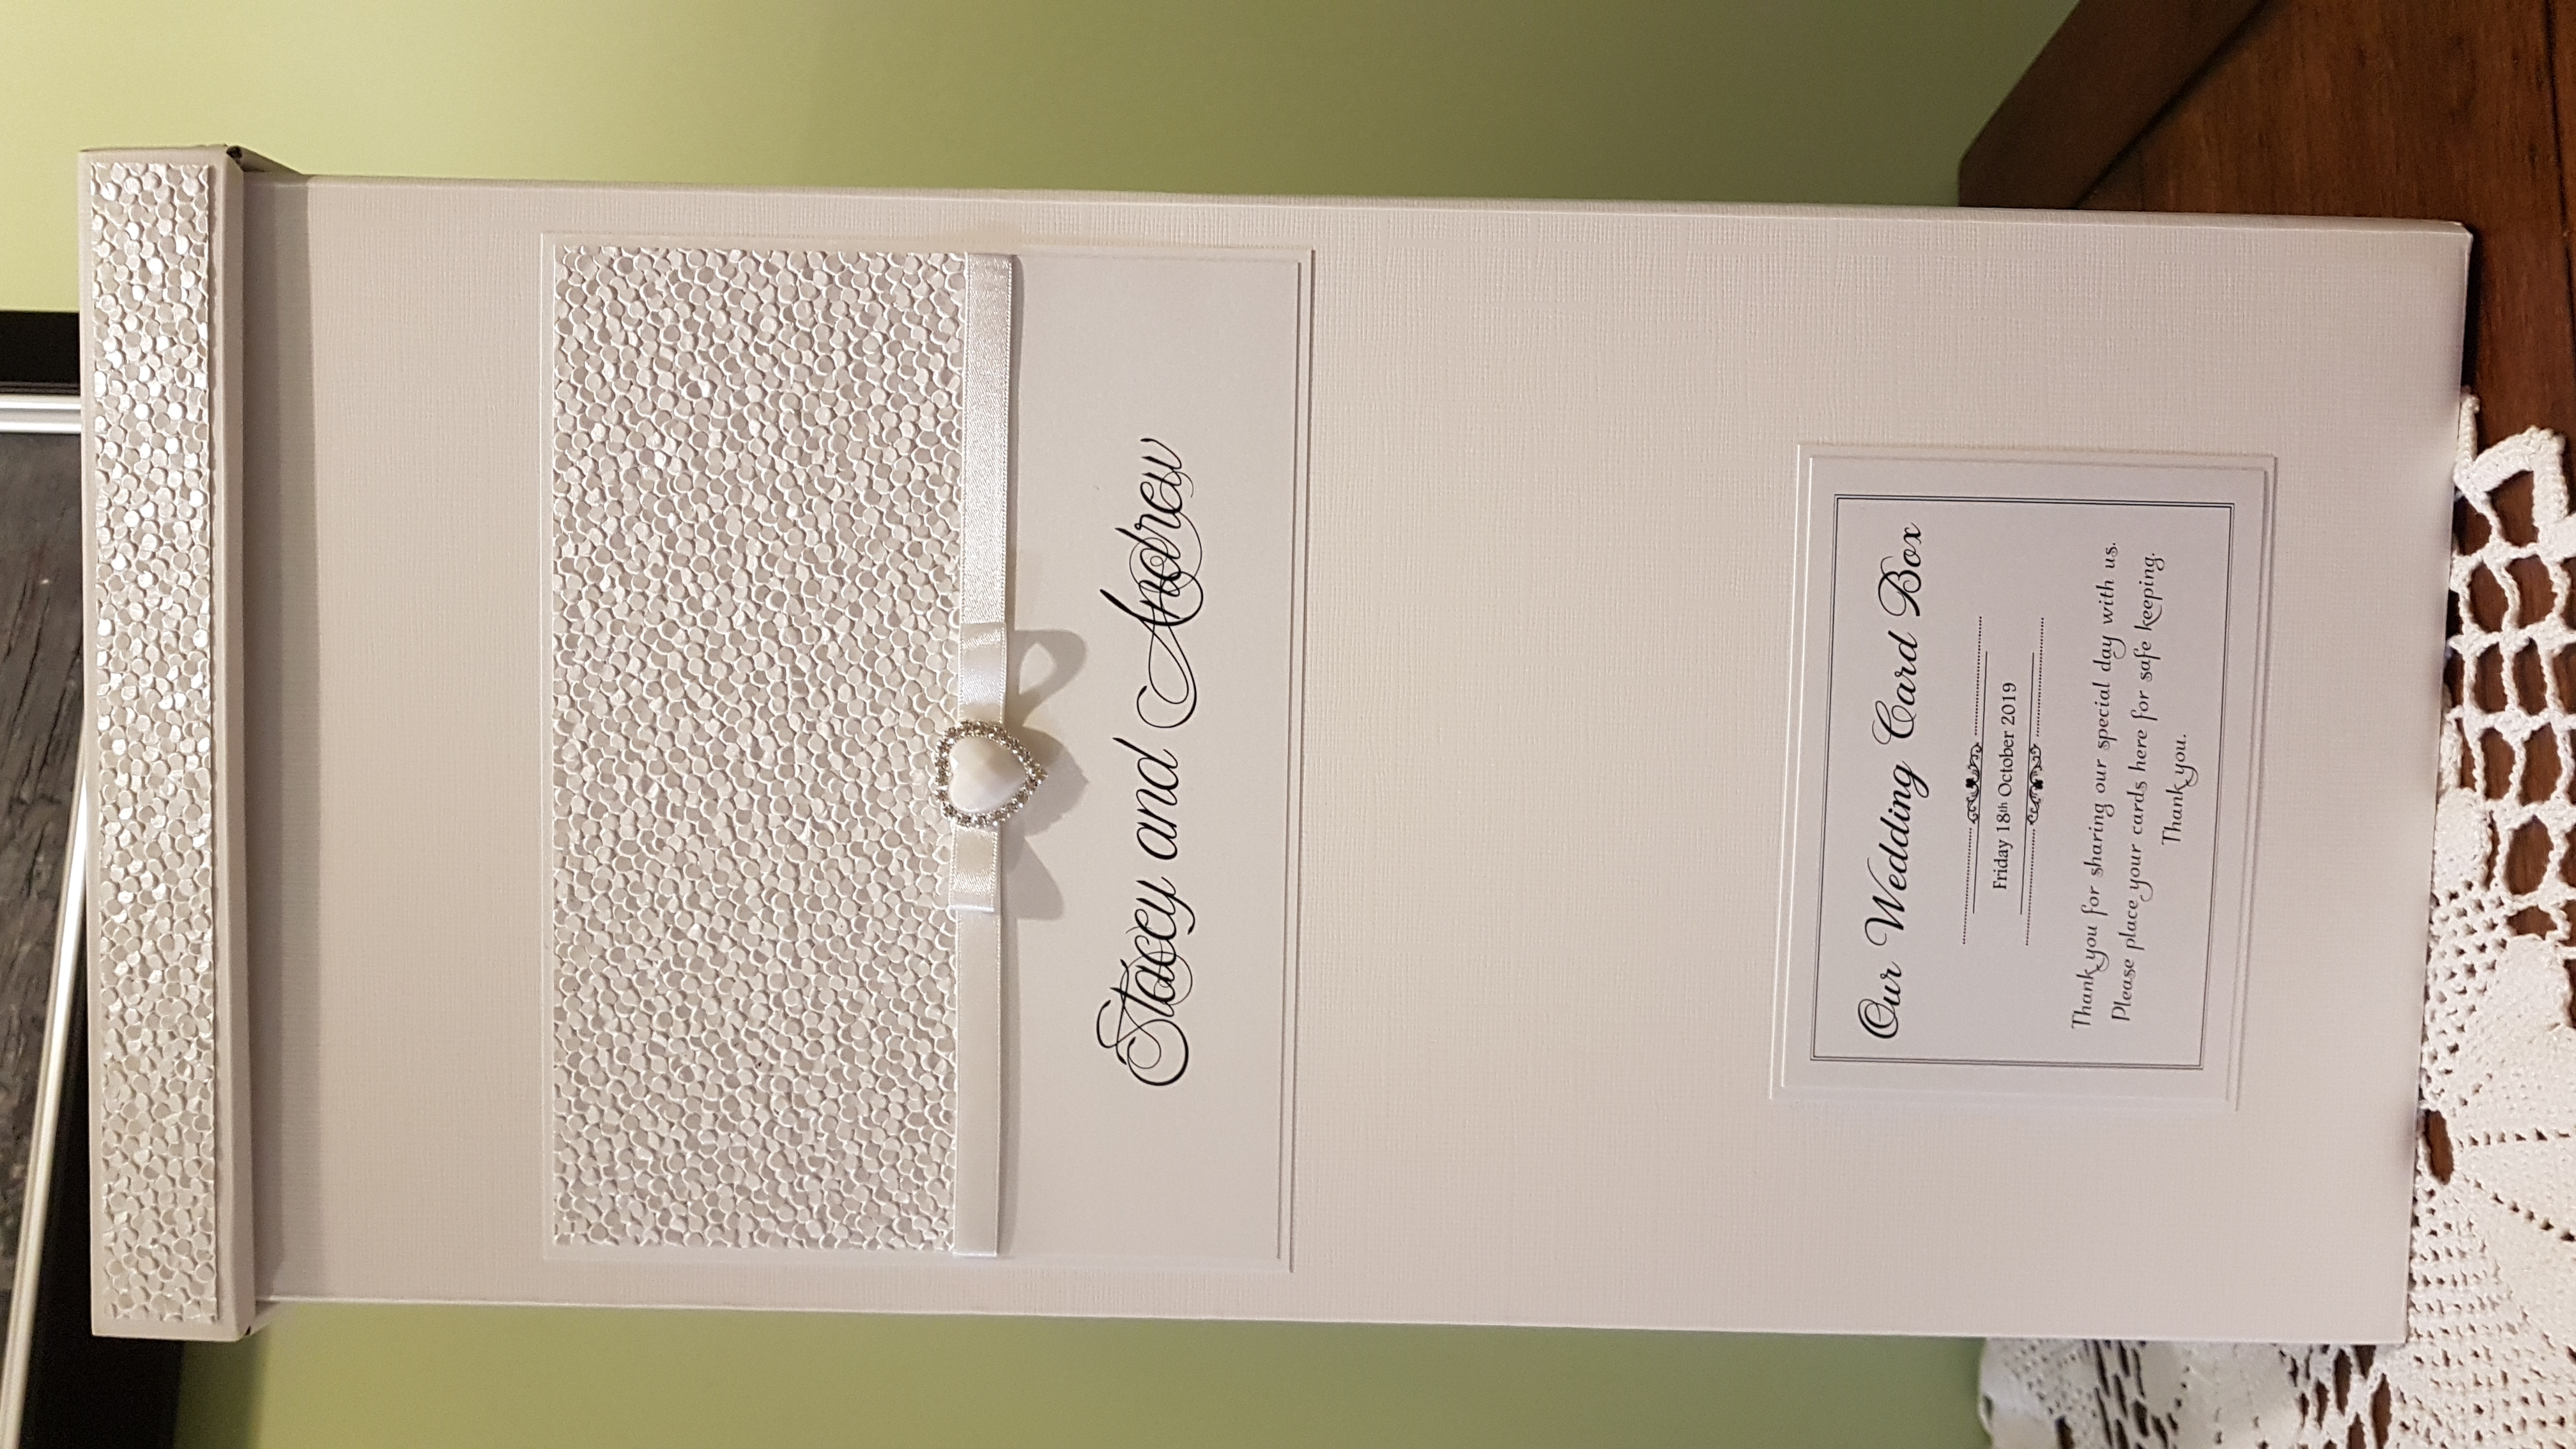 Postbox_Pearlescent white pattened paper